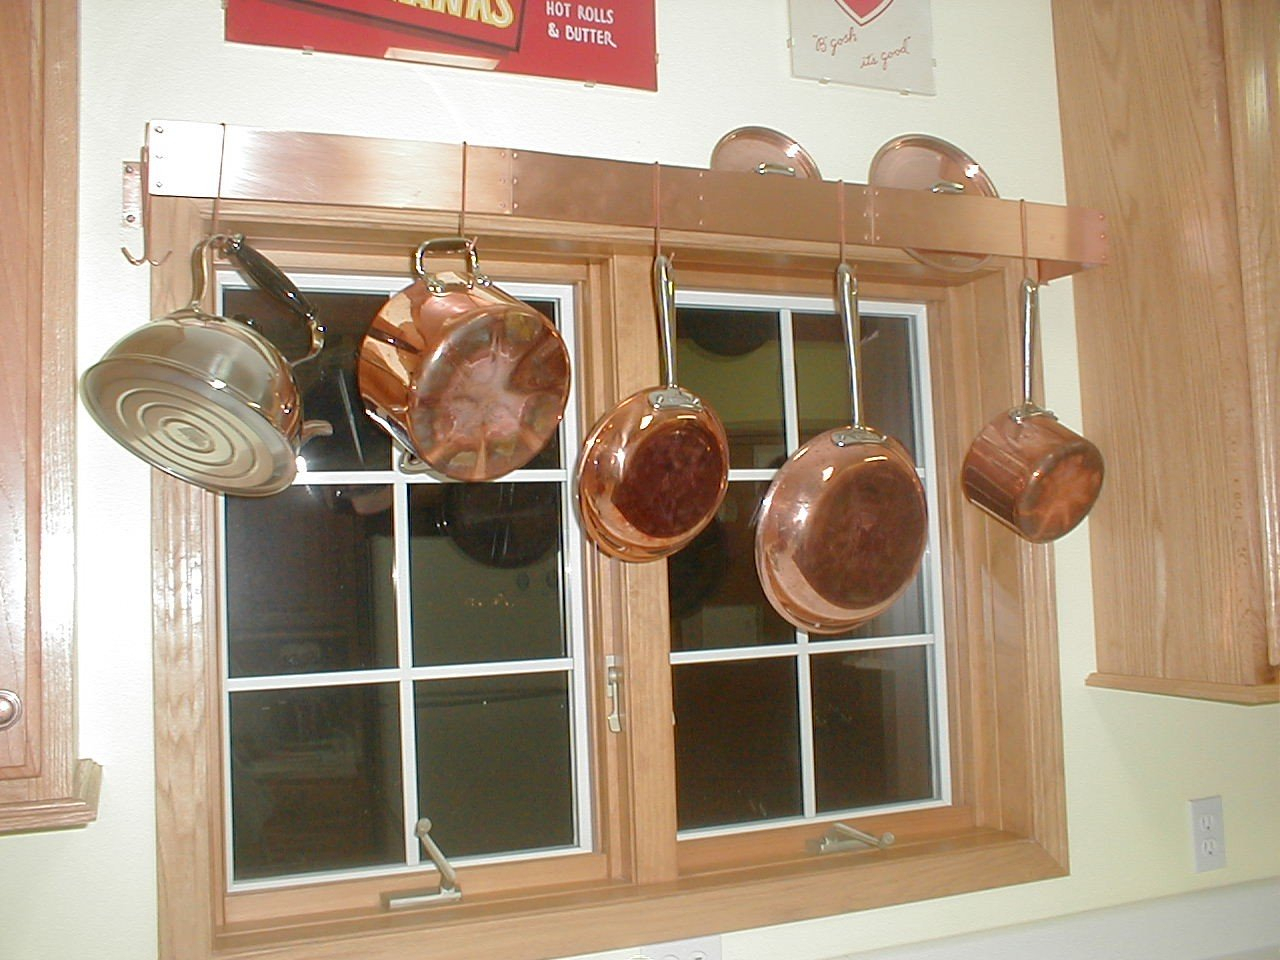 10 Spectacular Wall Mount Pot Rack Ideas decor copper wall mount pot rack for charming kitchen furniture ideas